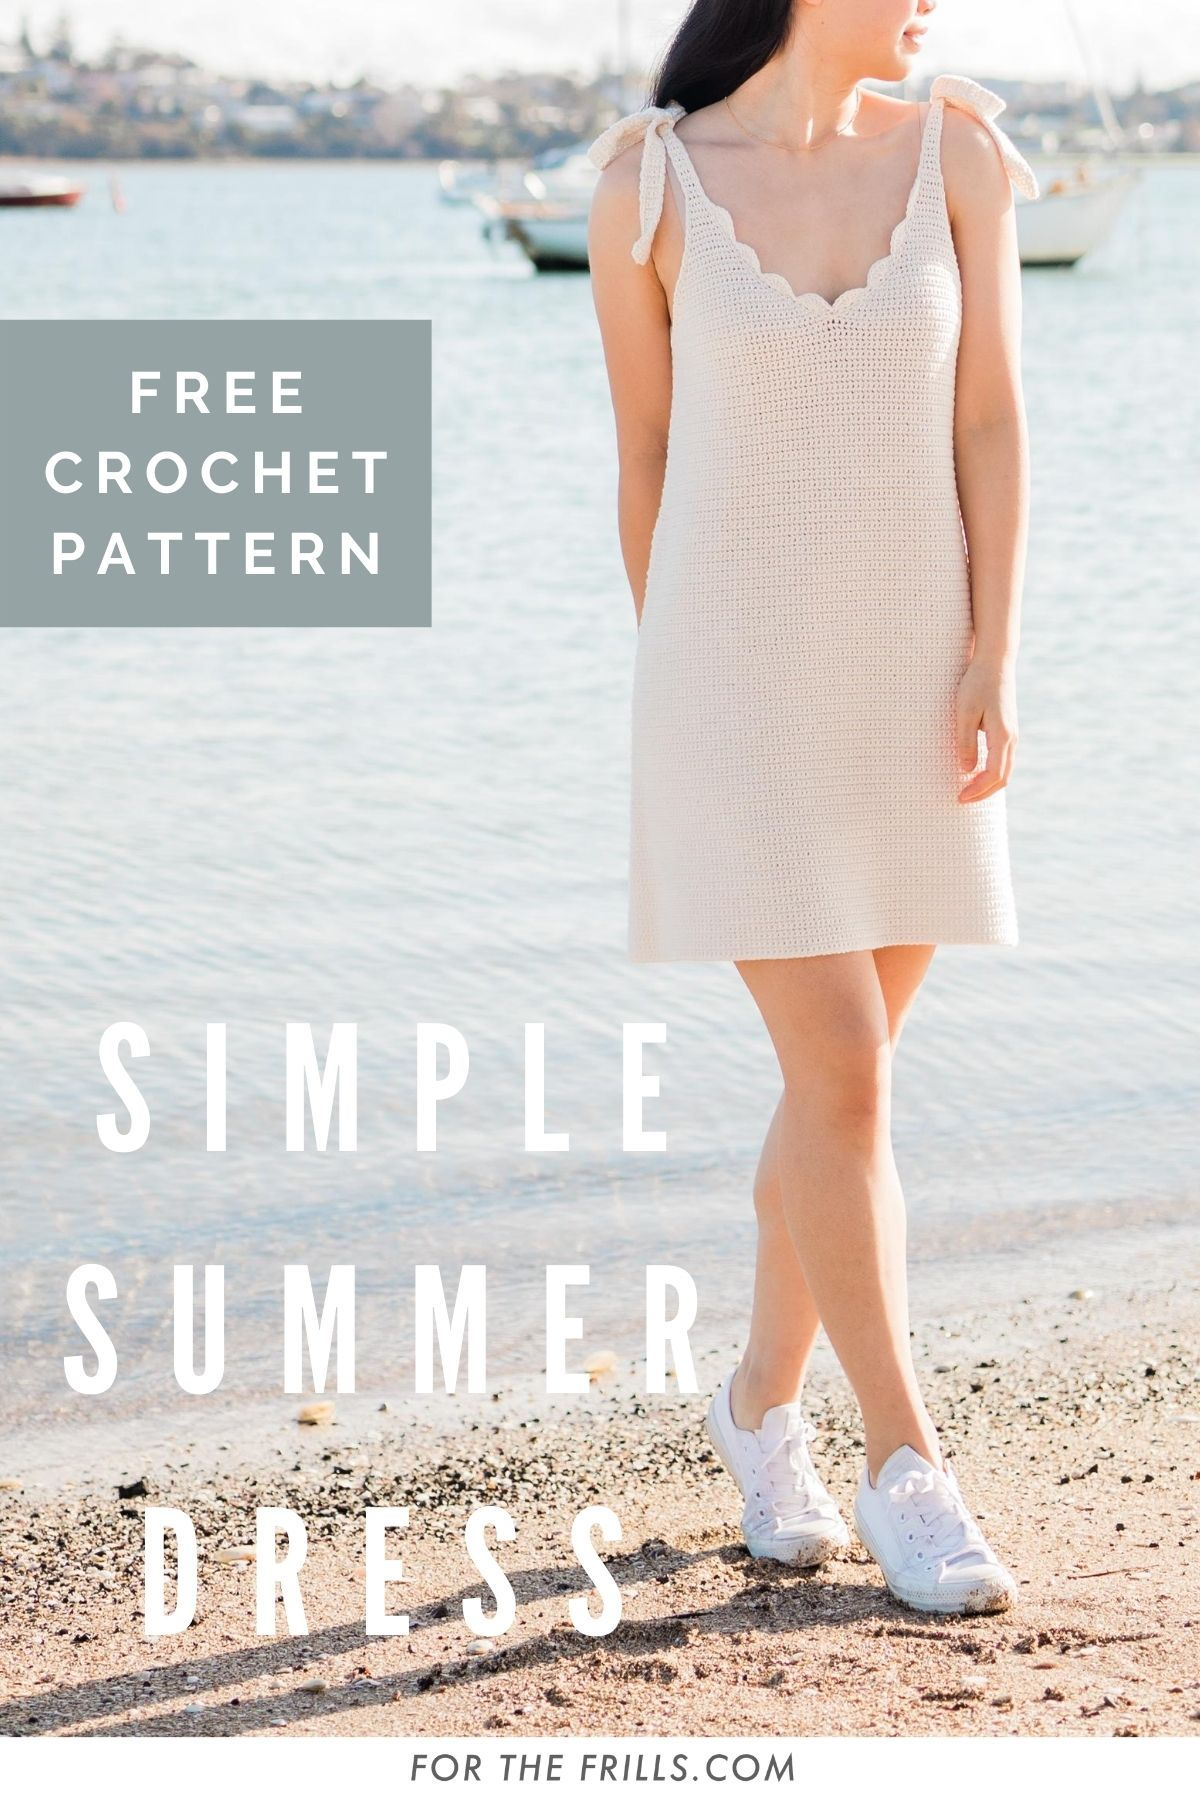 pin of crochet summer dress with scallop v-neckline and tie straps with woman standing on the beach